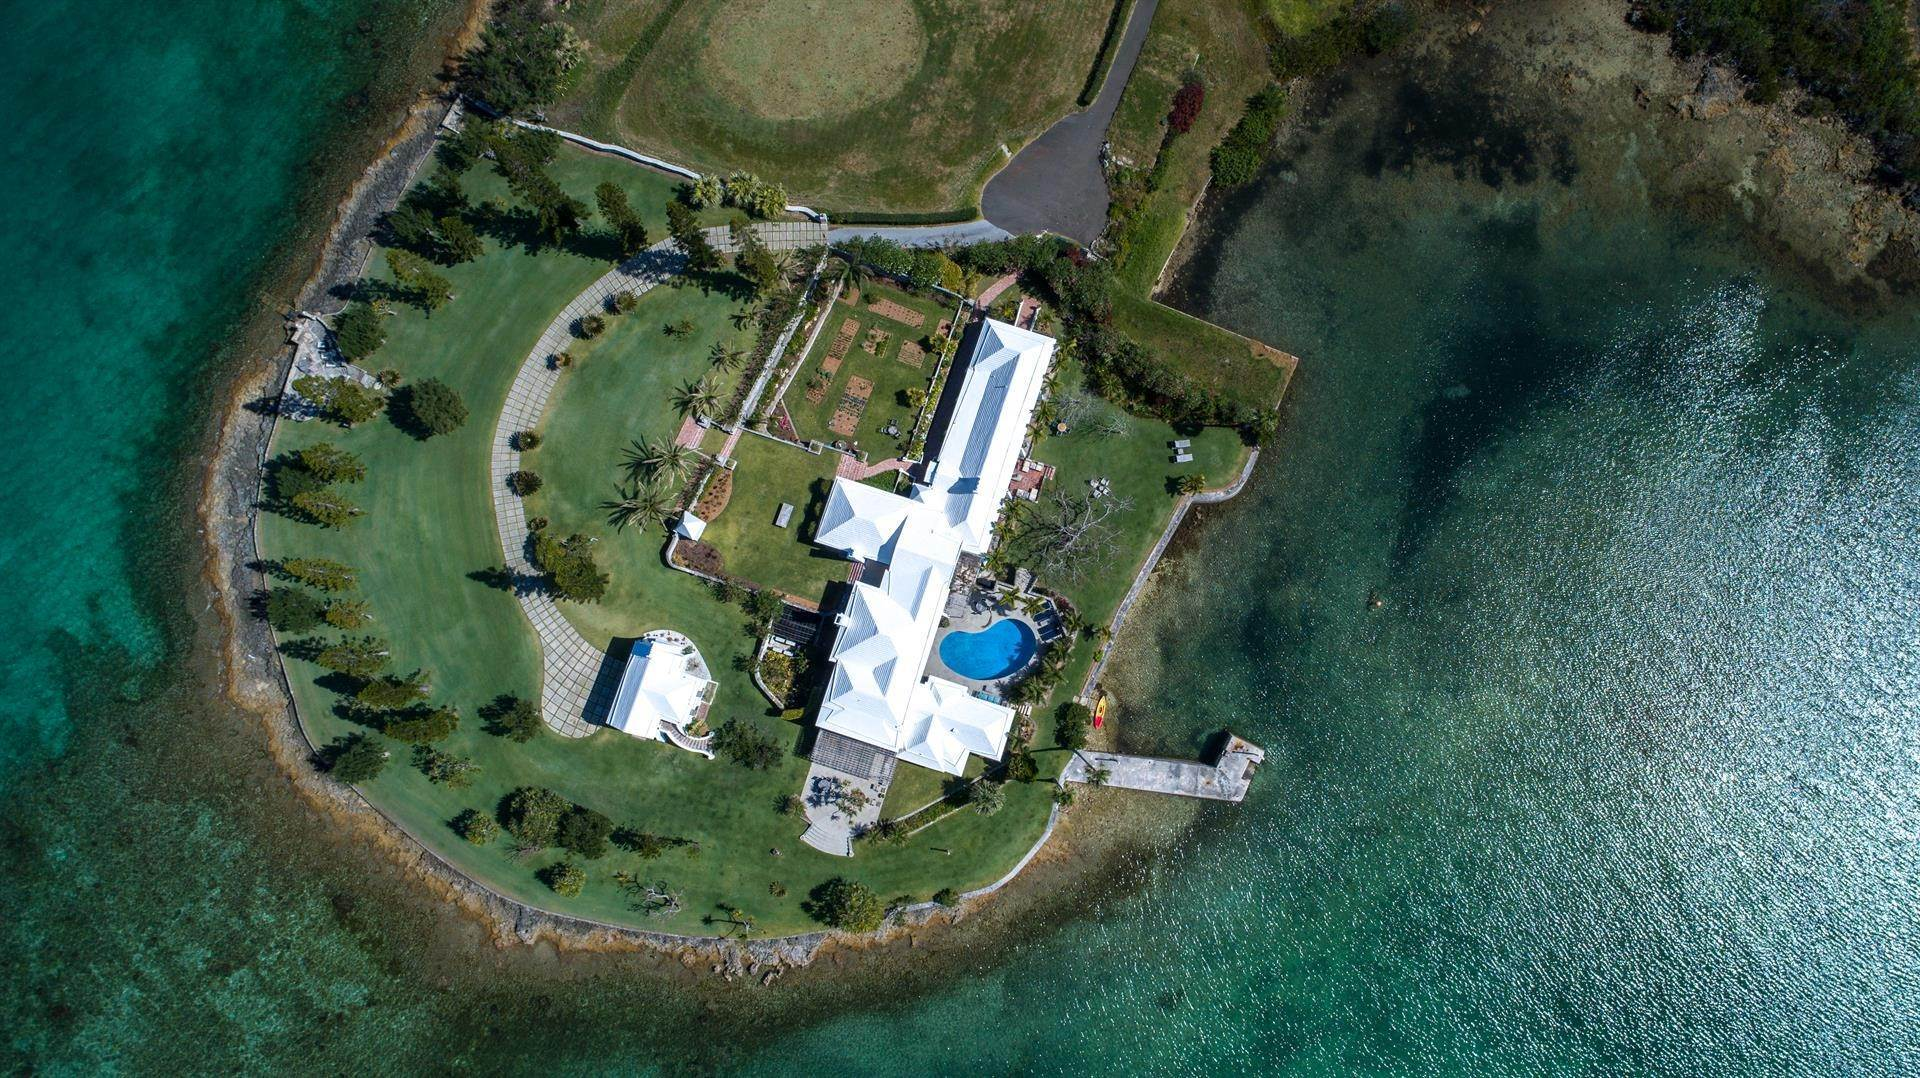 30. Địa ốc vì Bán tại Windsong House Windsong House, 15 Fairways Road,Bermuda – Sinclair Realty